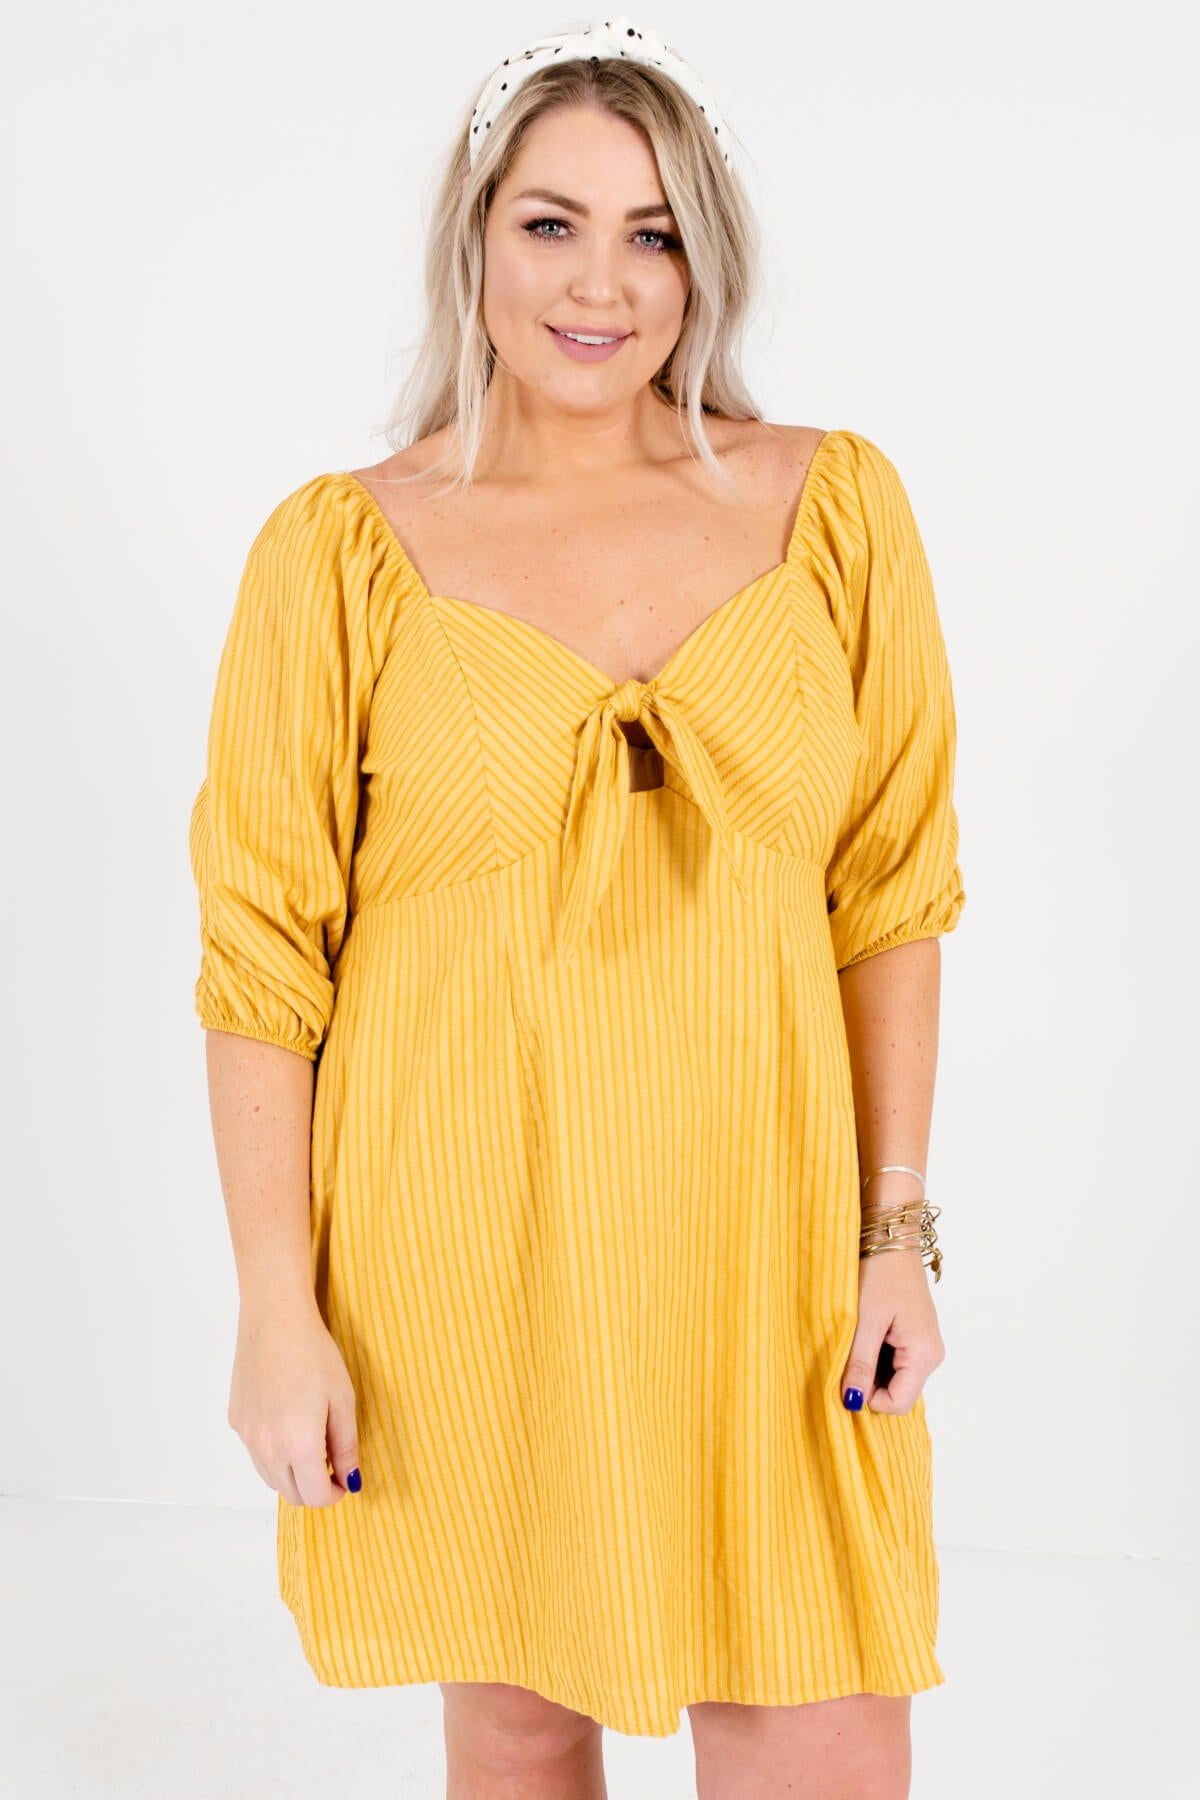 8017af997bd5 Mustard Yellow Plus Size Off Shoulder Puff Sleeve Tie-Front Cutout Mini  Dresses